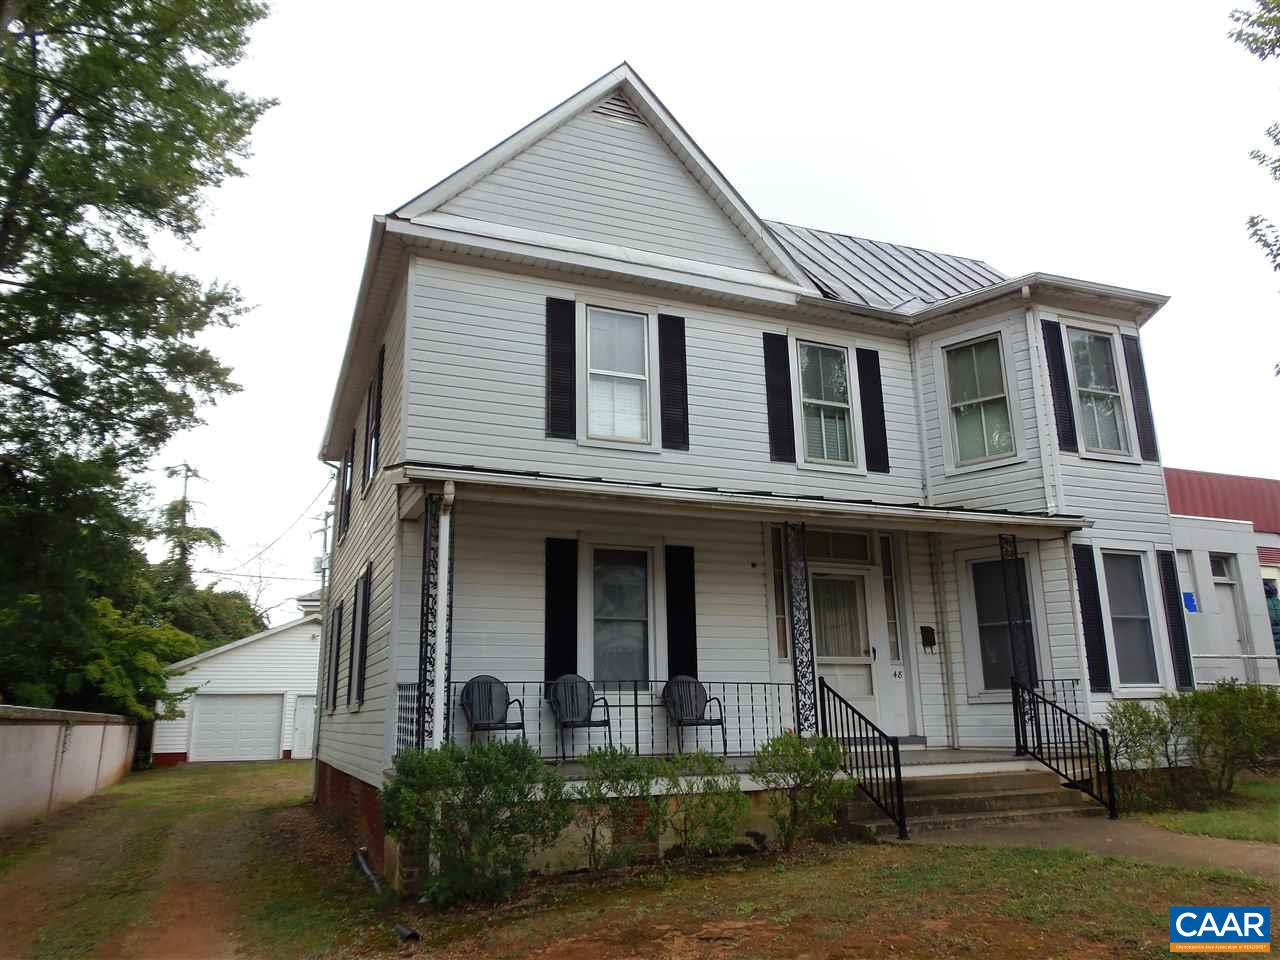 Single Family Home for Sale at 148 W MAIN Street Orange, Virginia 22960 United States